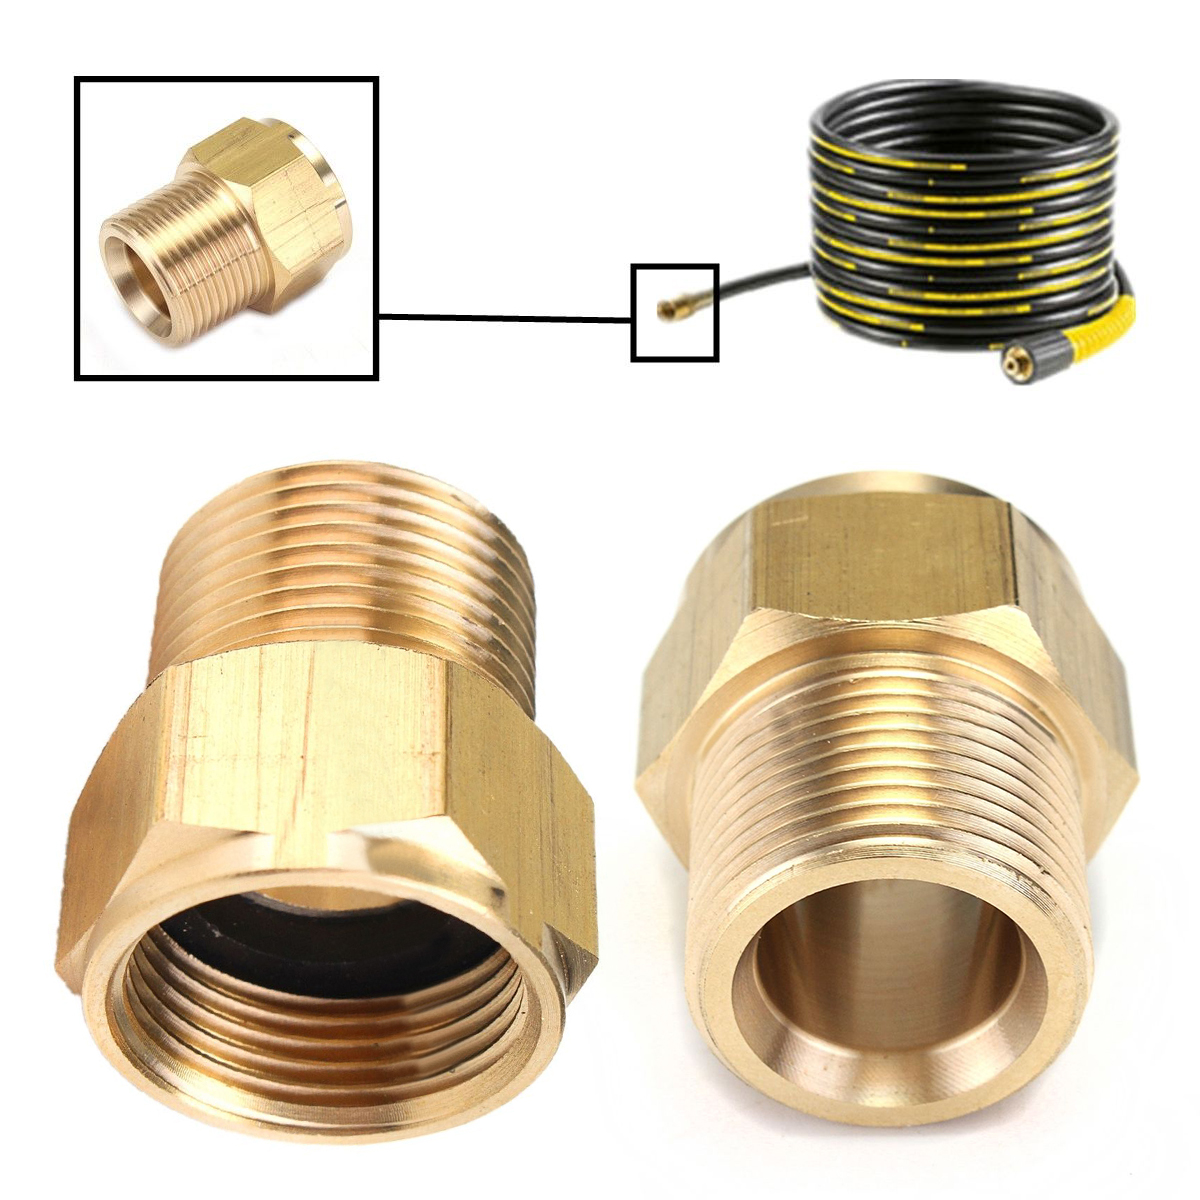 1pc High Pressure Hose Coupling Adapter Connector M22 Male * M22 Female 31*14mm Mayitr For HD HDS Spray Pressure Washer 59 brass freon high pressure refrigerator of copper adapter connector female inner diameter 24mm to male 11mm